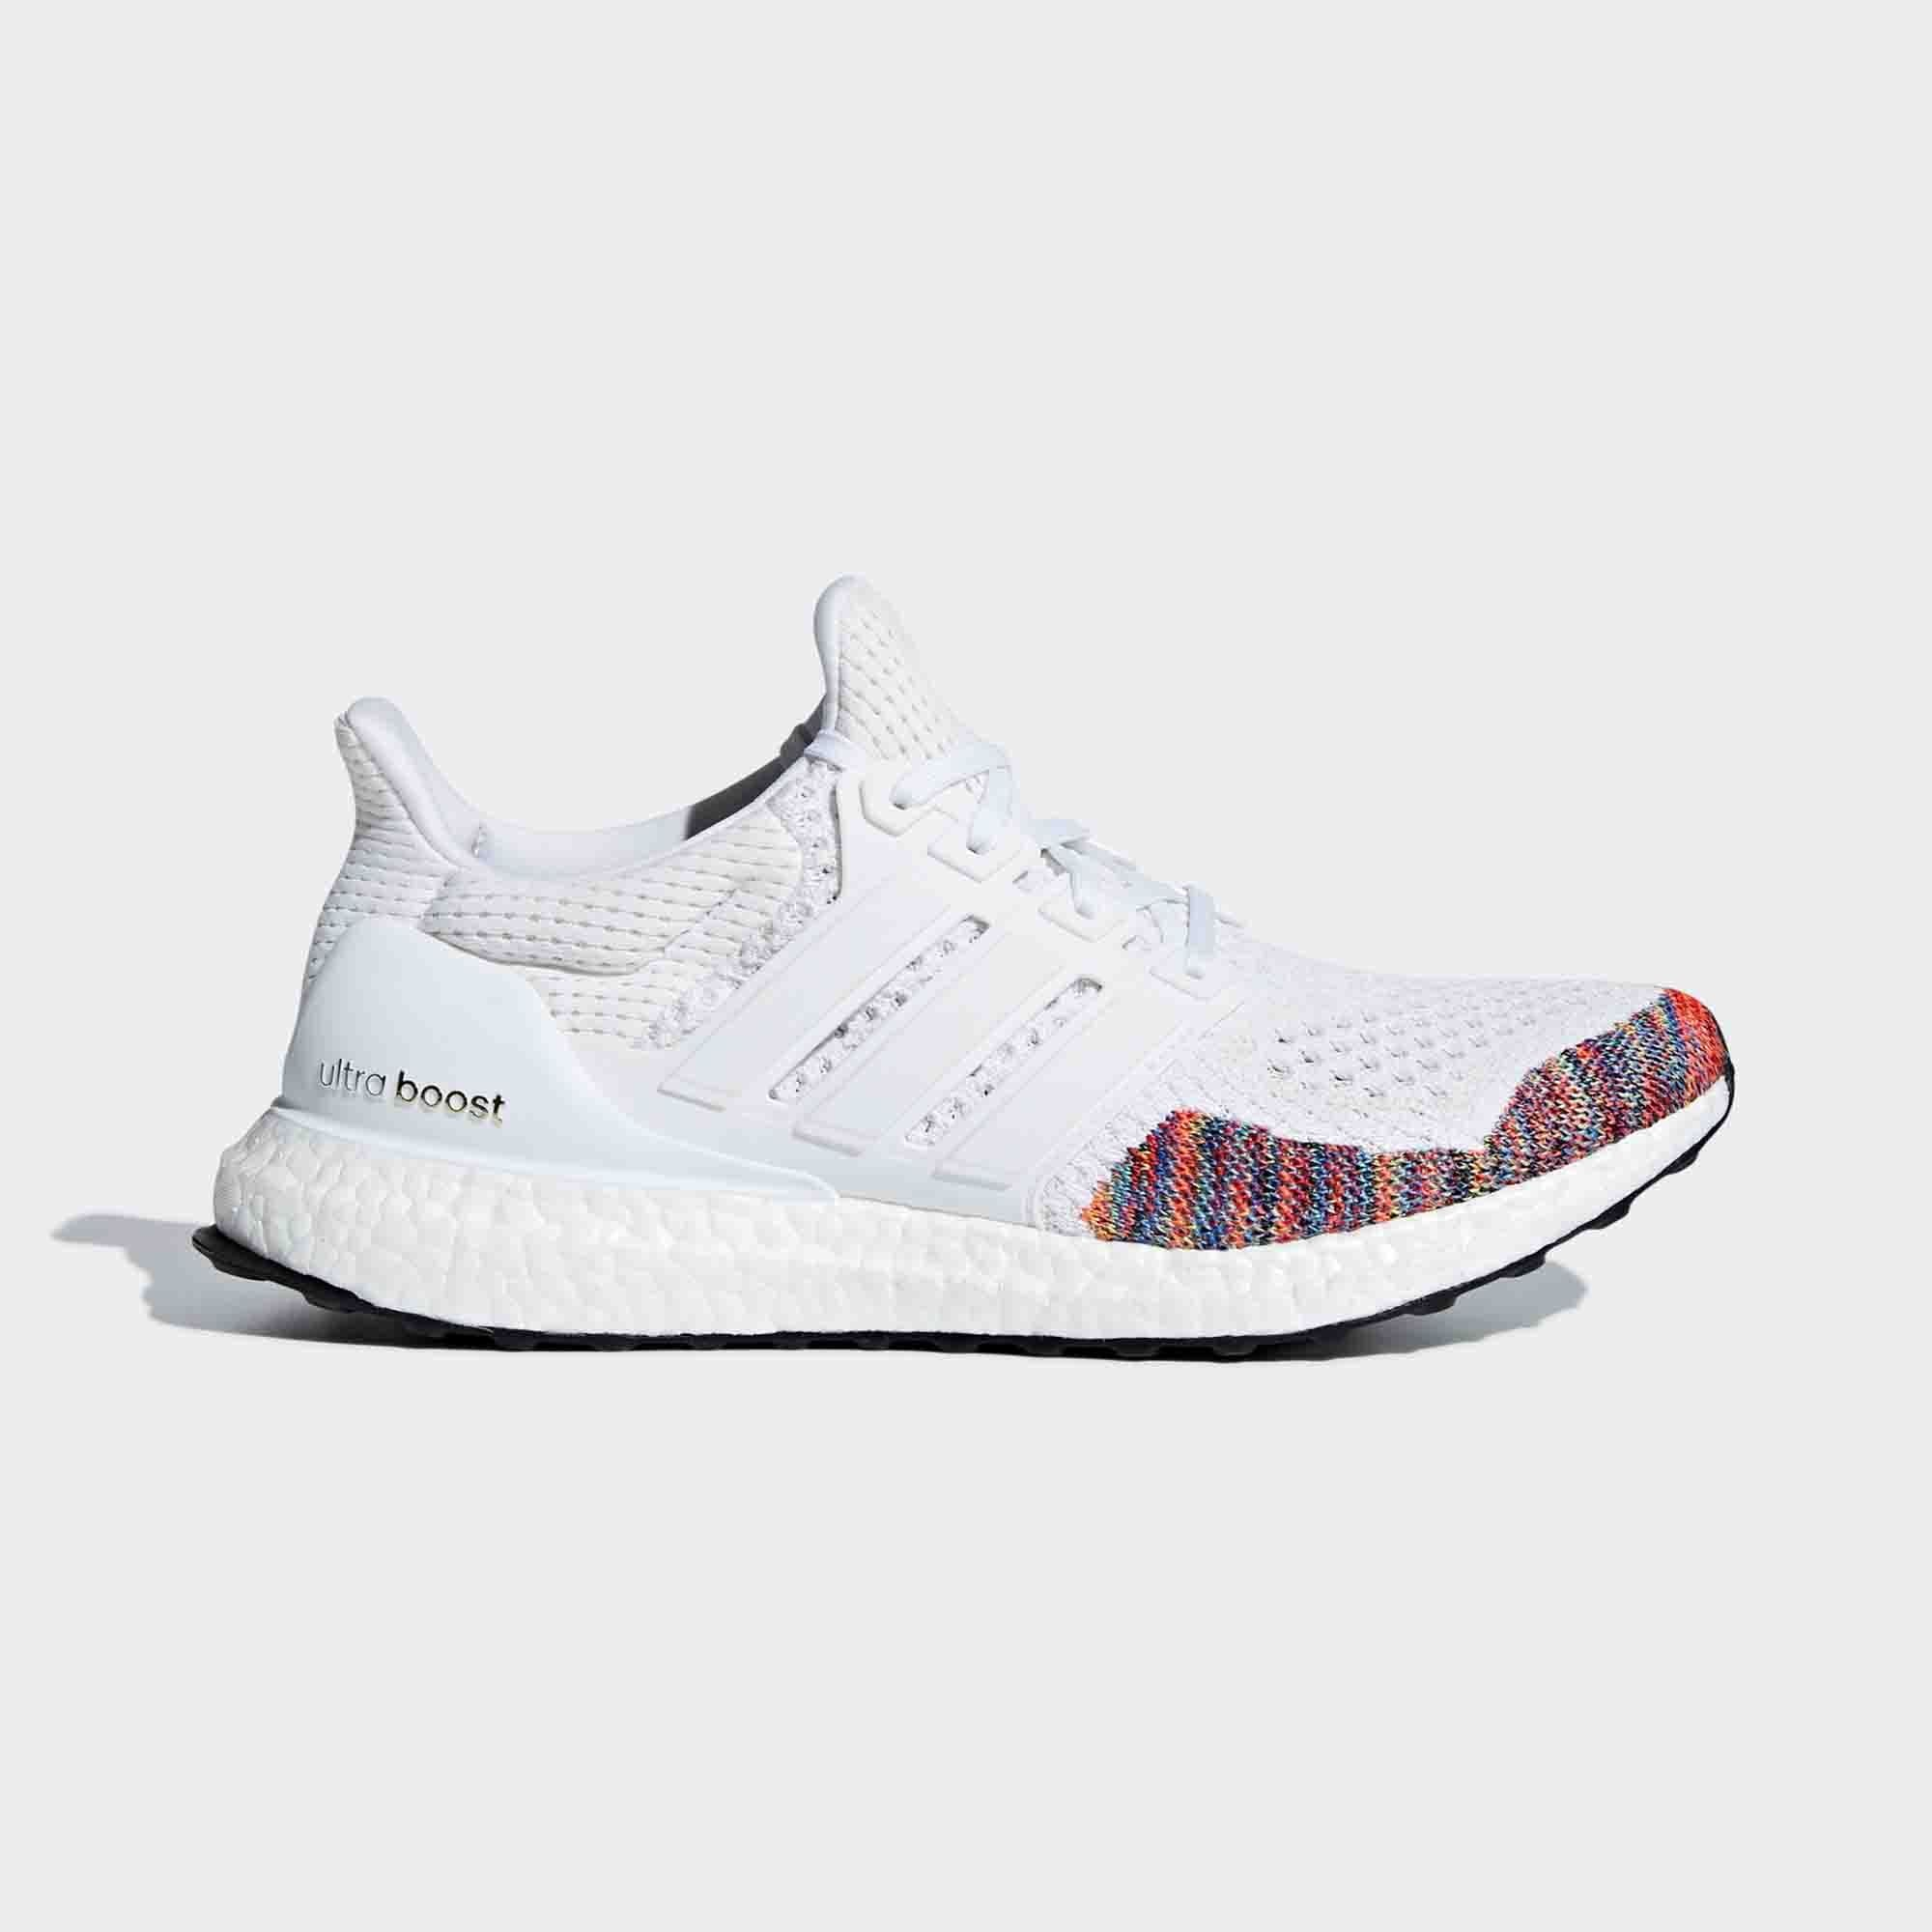 timeless design a2773 64031 Buy adidas Men Ultraboost Ltd Running Shoes Online in Singapore | Royal  Sporting House